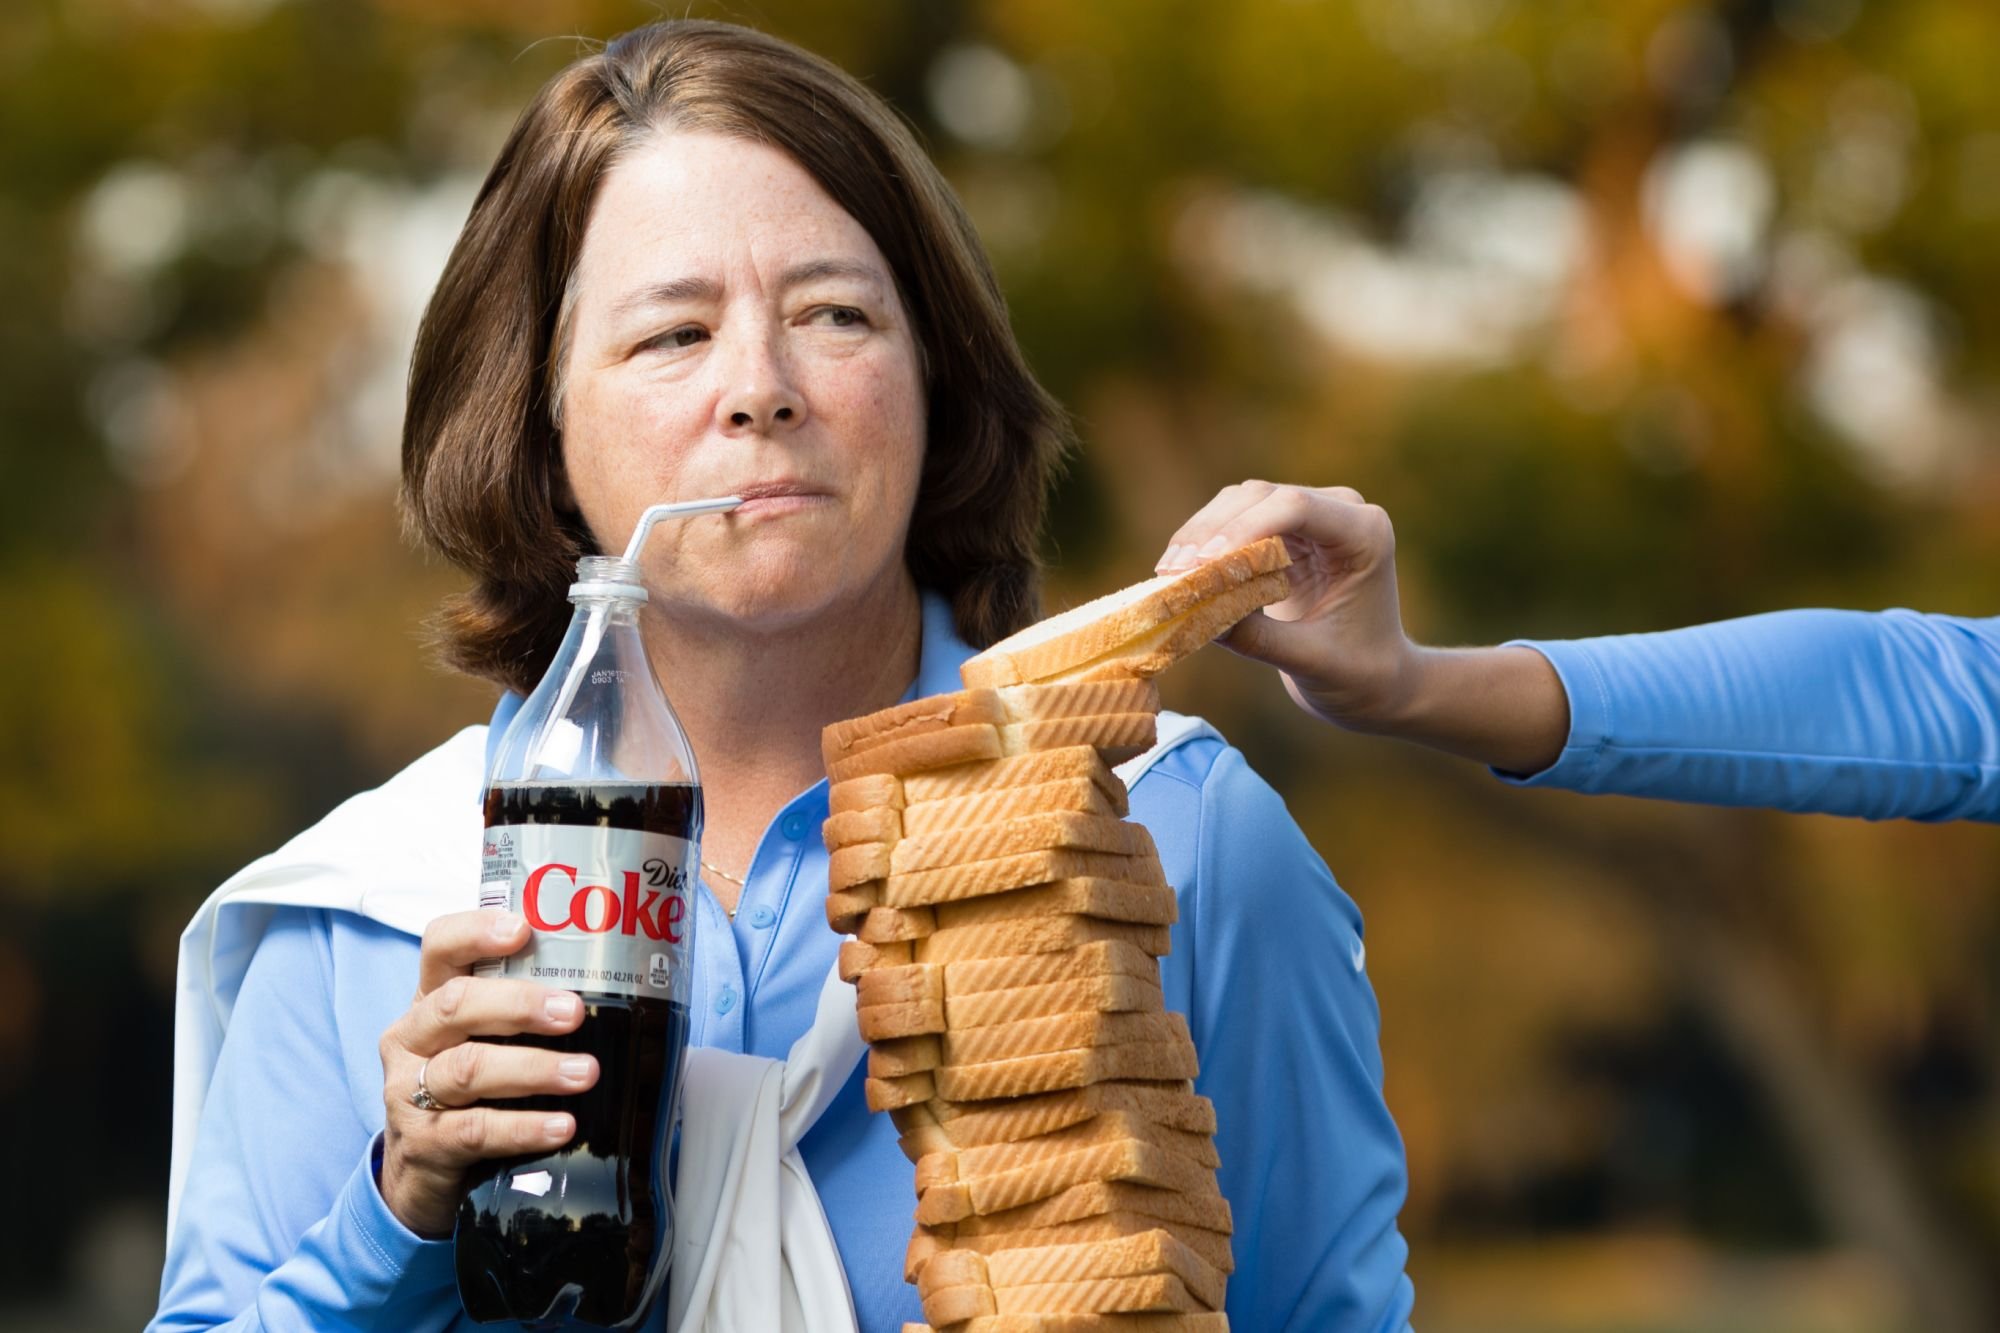 Julie Garner holding a stack of white bread and a diet Coke.